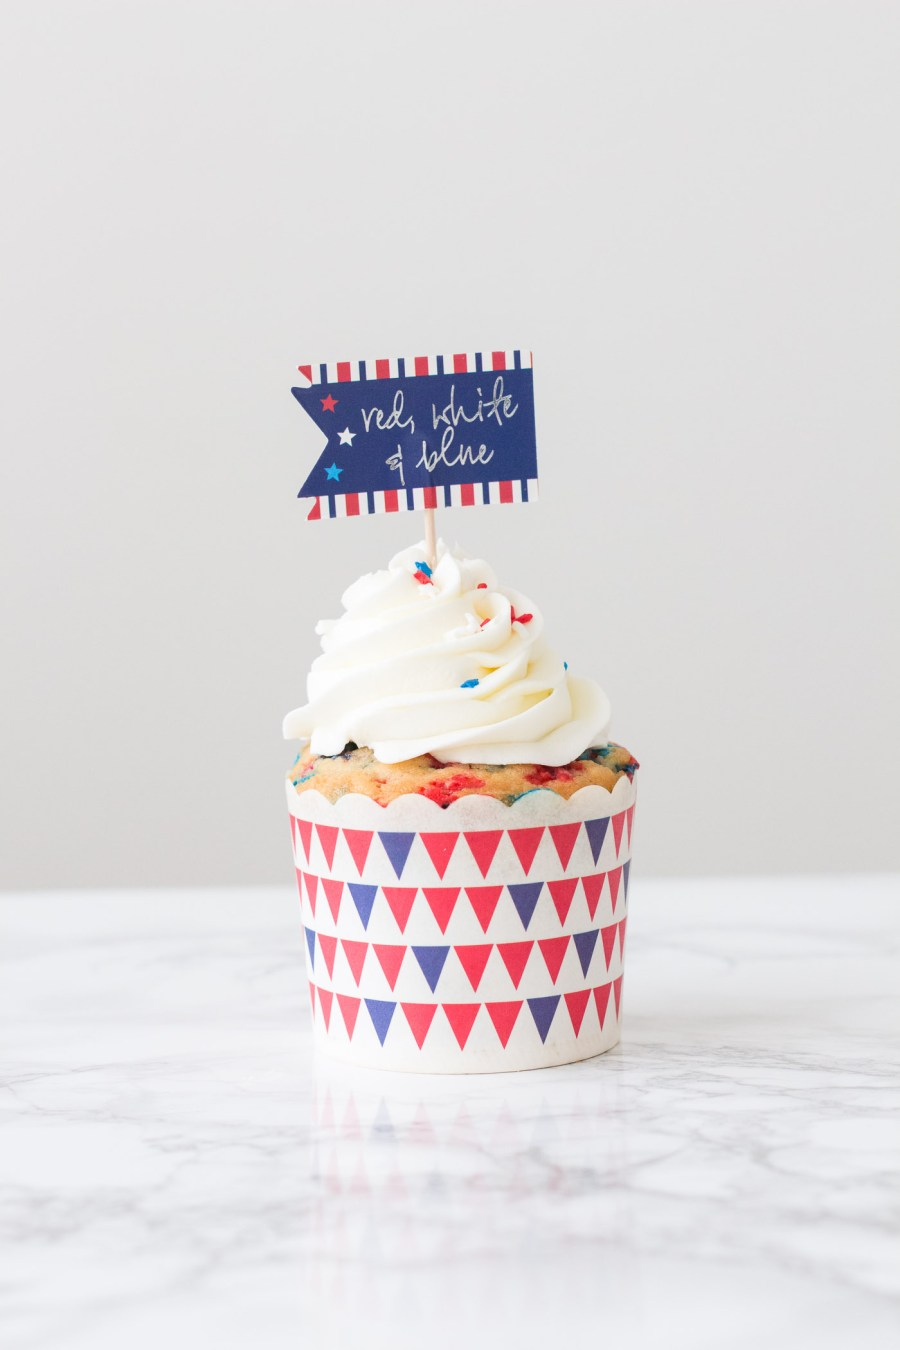 Red, White & Blue Funfetti Cupcakes, 4th of July dessert, patriotic dessert, baking blog, Treats and Trends